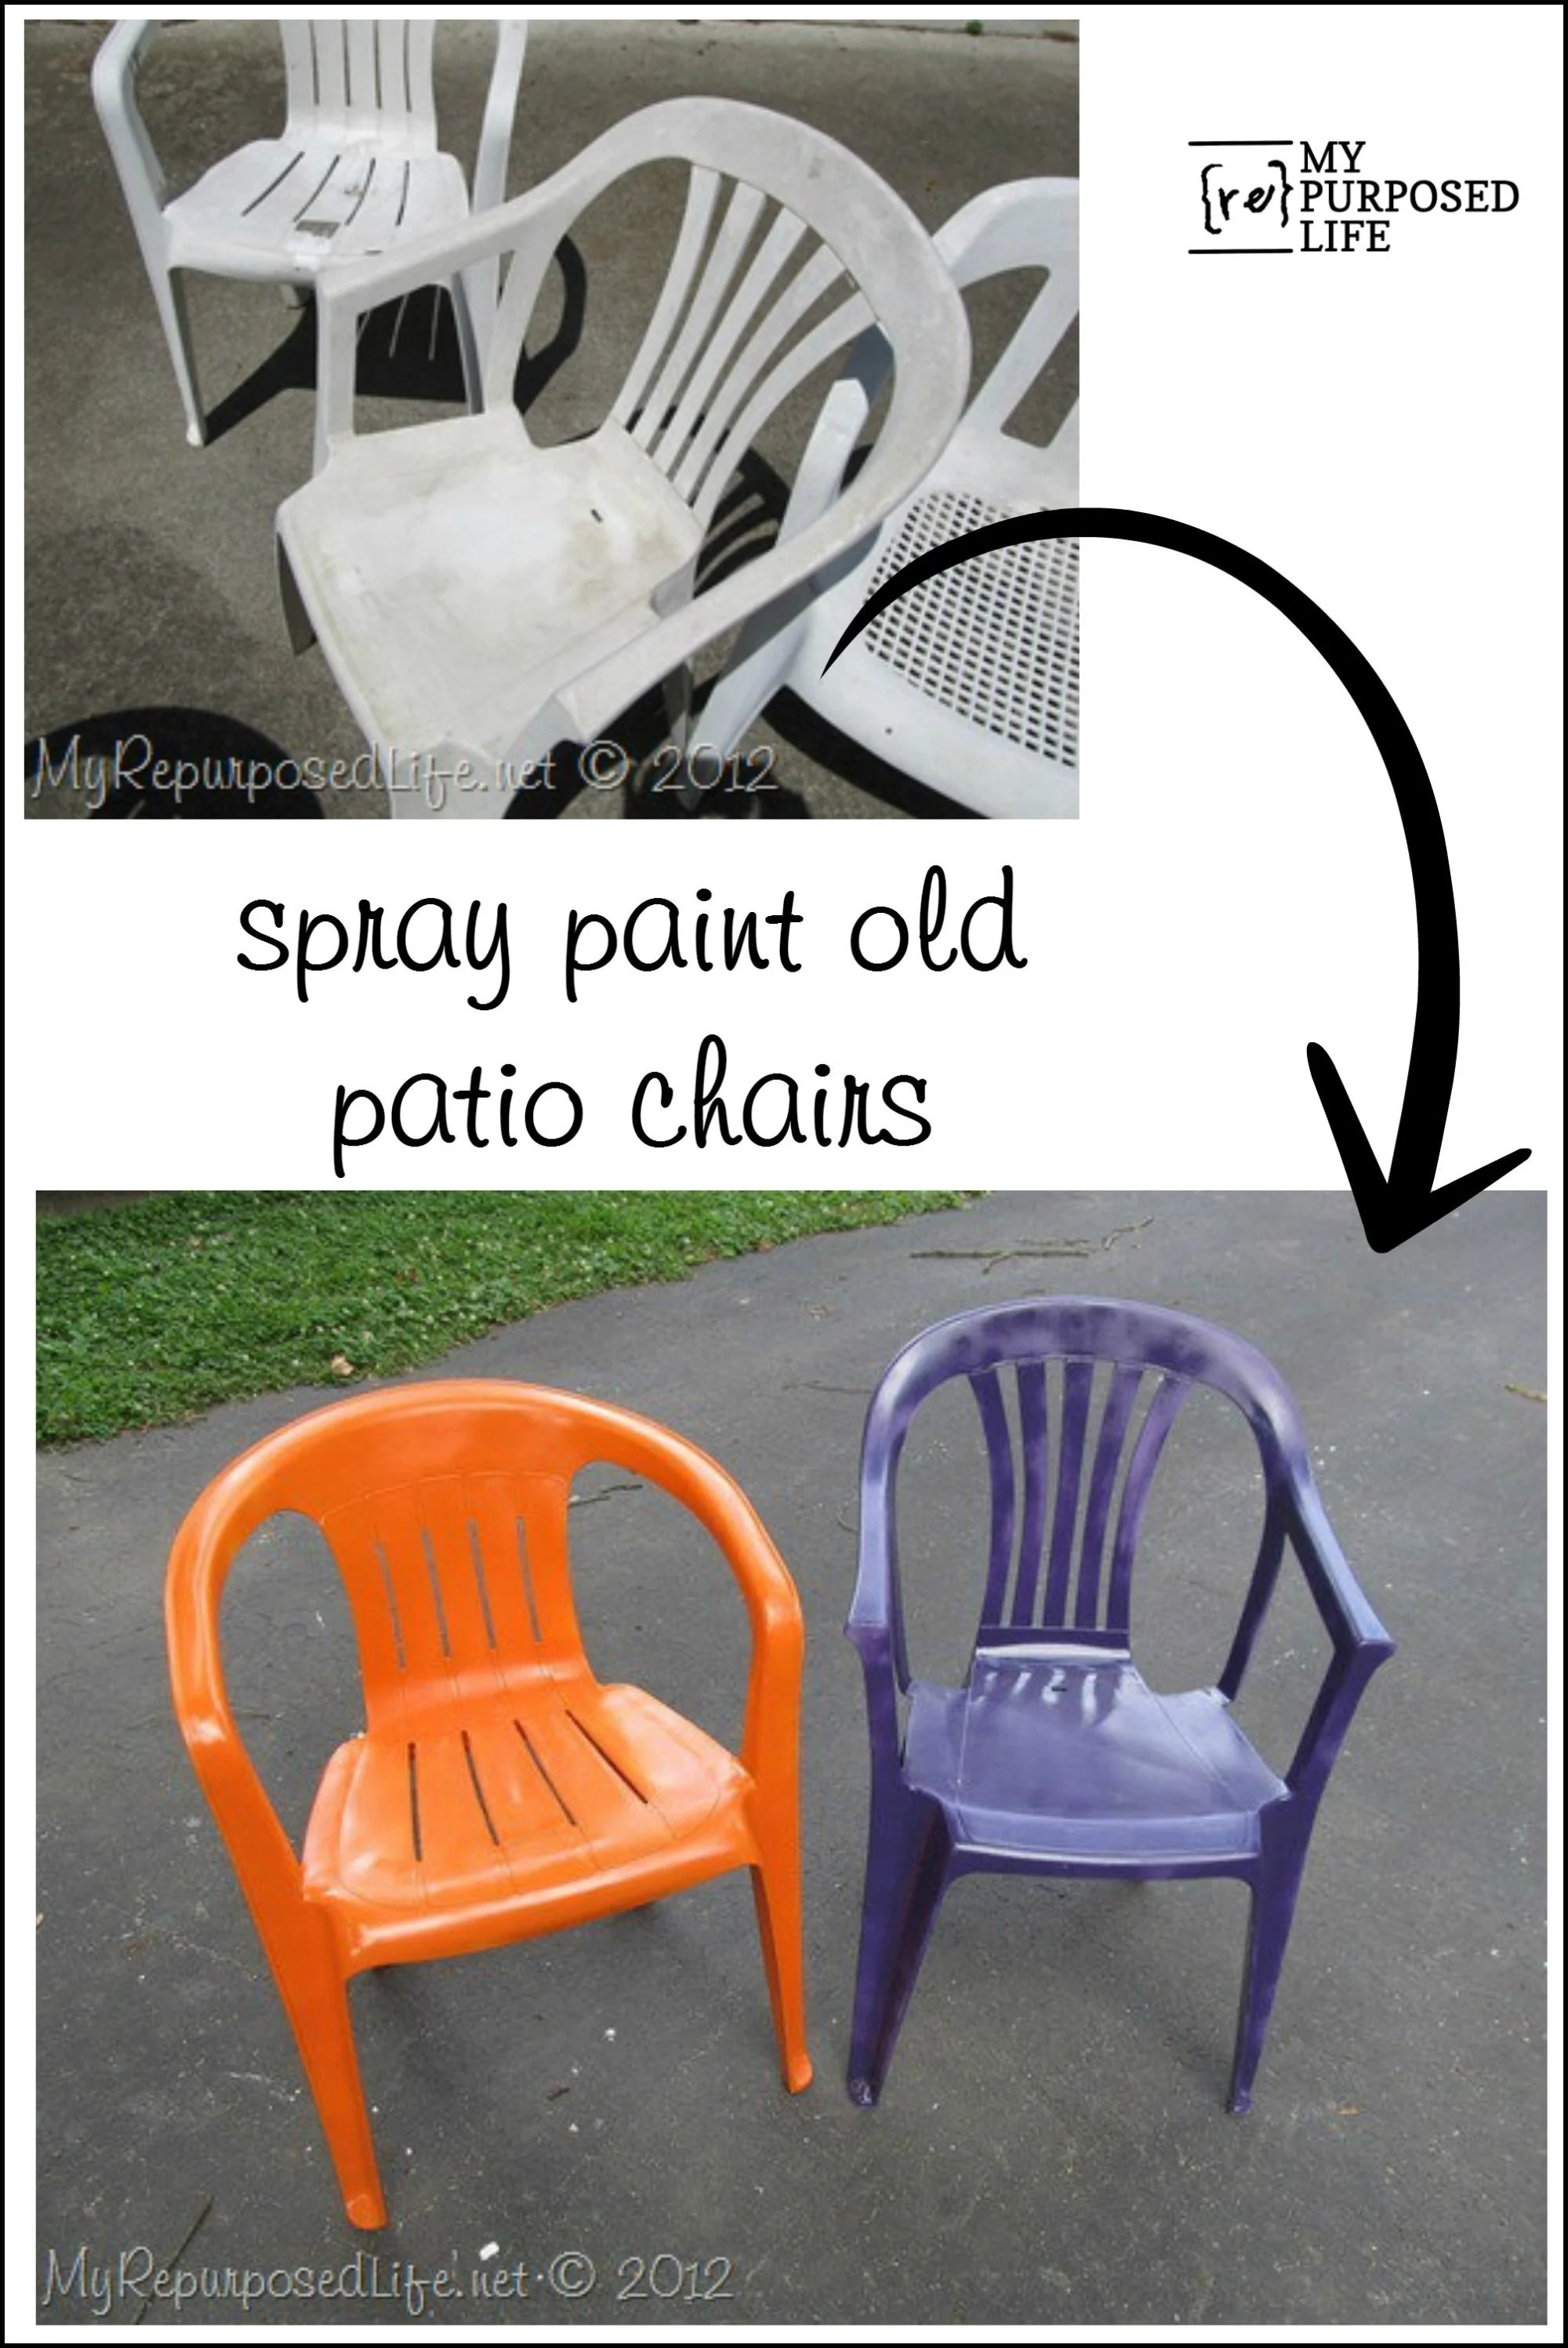 Beautiful Do You Have Some Of These Cheap Plastic Chairs That Are Ridiculously  Stained And Ugly? I Have 4 That Iu0027ve Had So Long, I Donu0027t Even Know Where  They Came ...